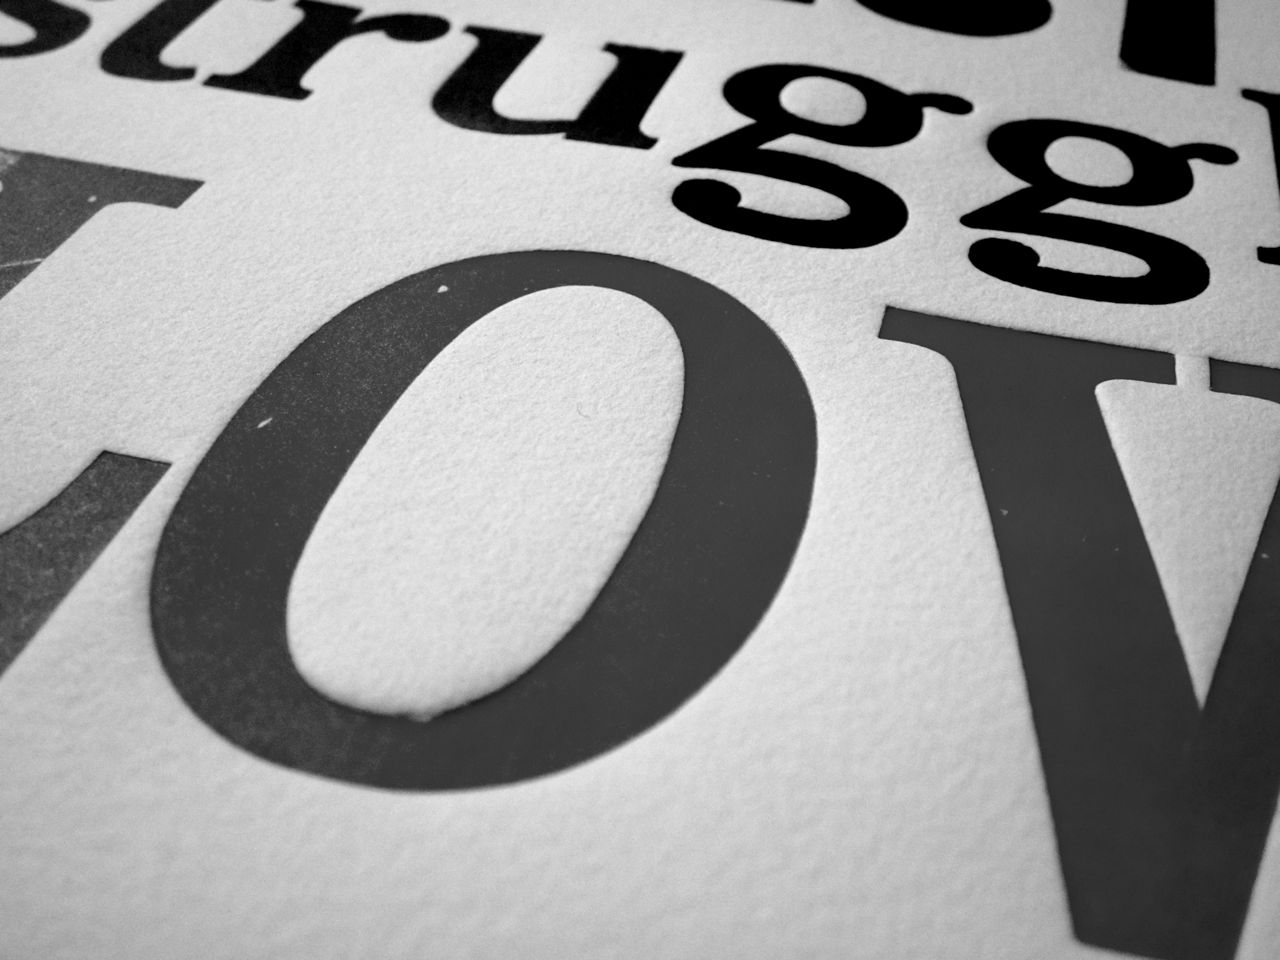 letterpress image in black and white wood type closeup